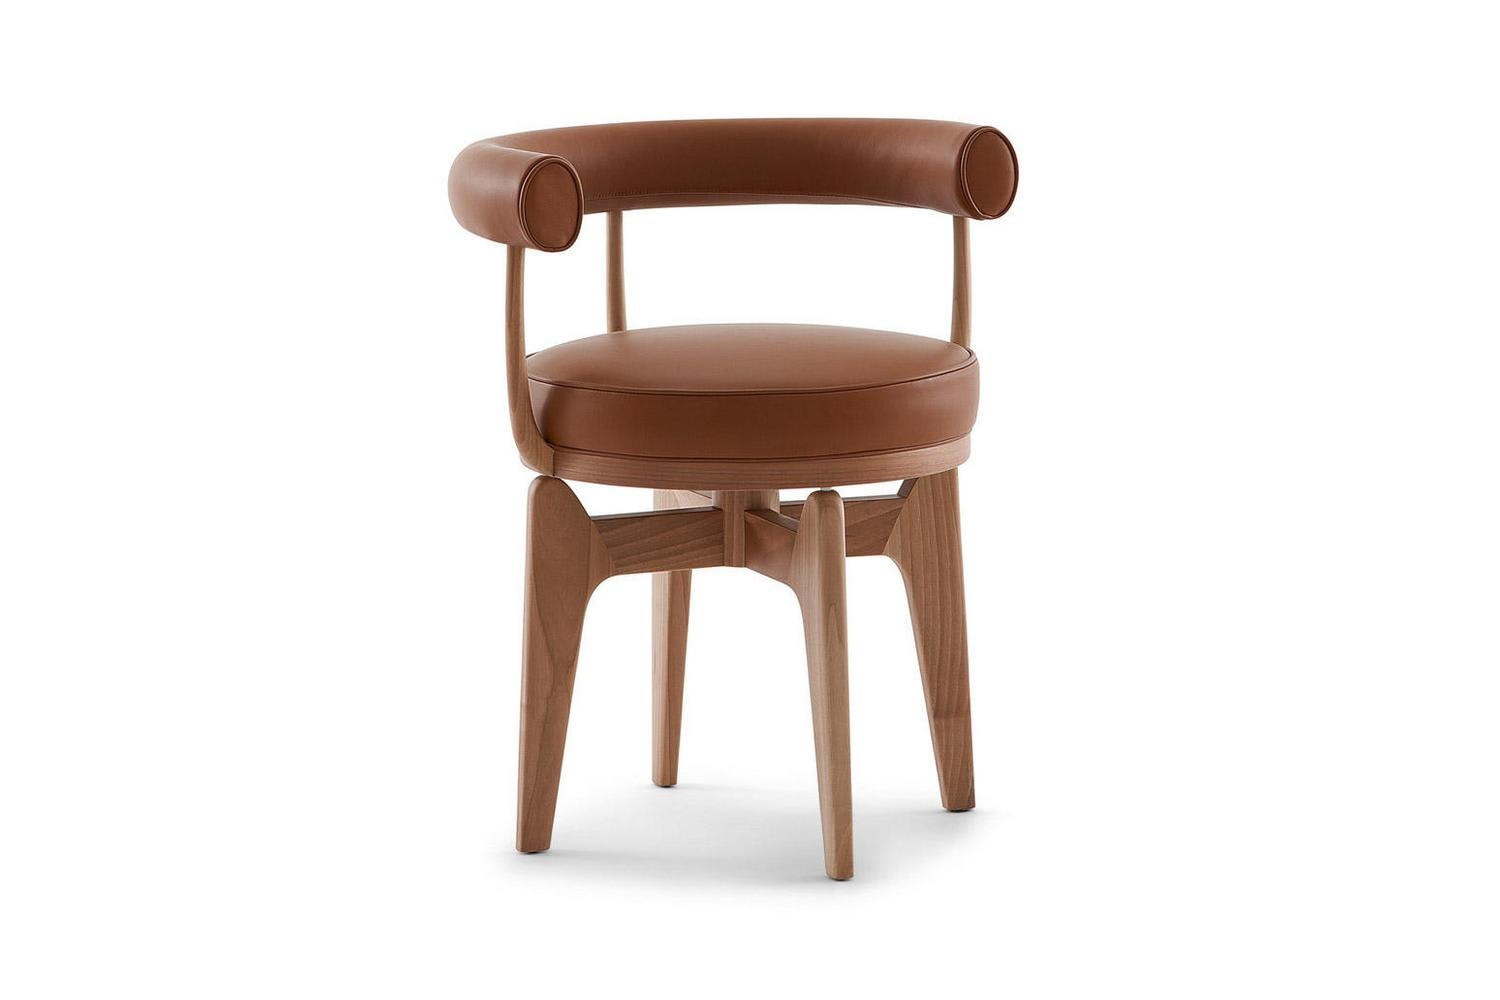 528 Indochine Chair by Charlotte Perriand for Cassina